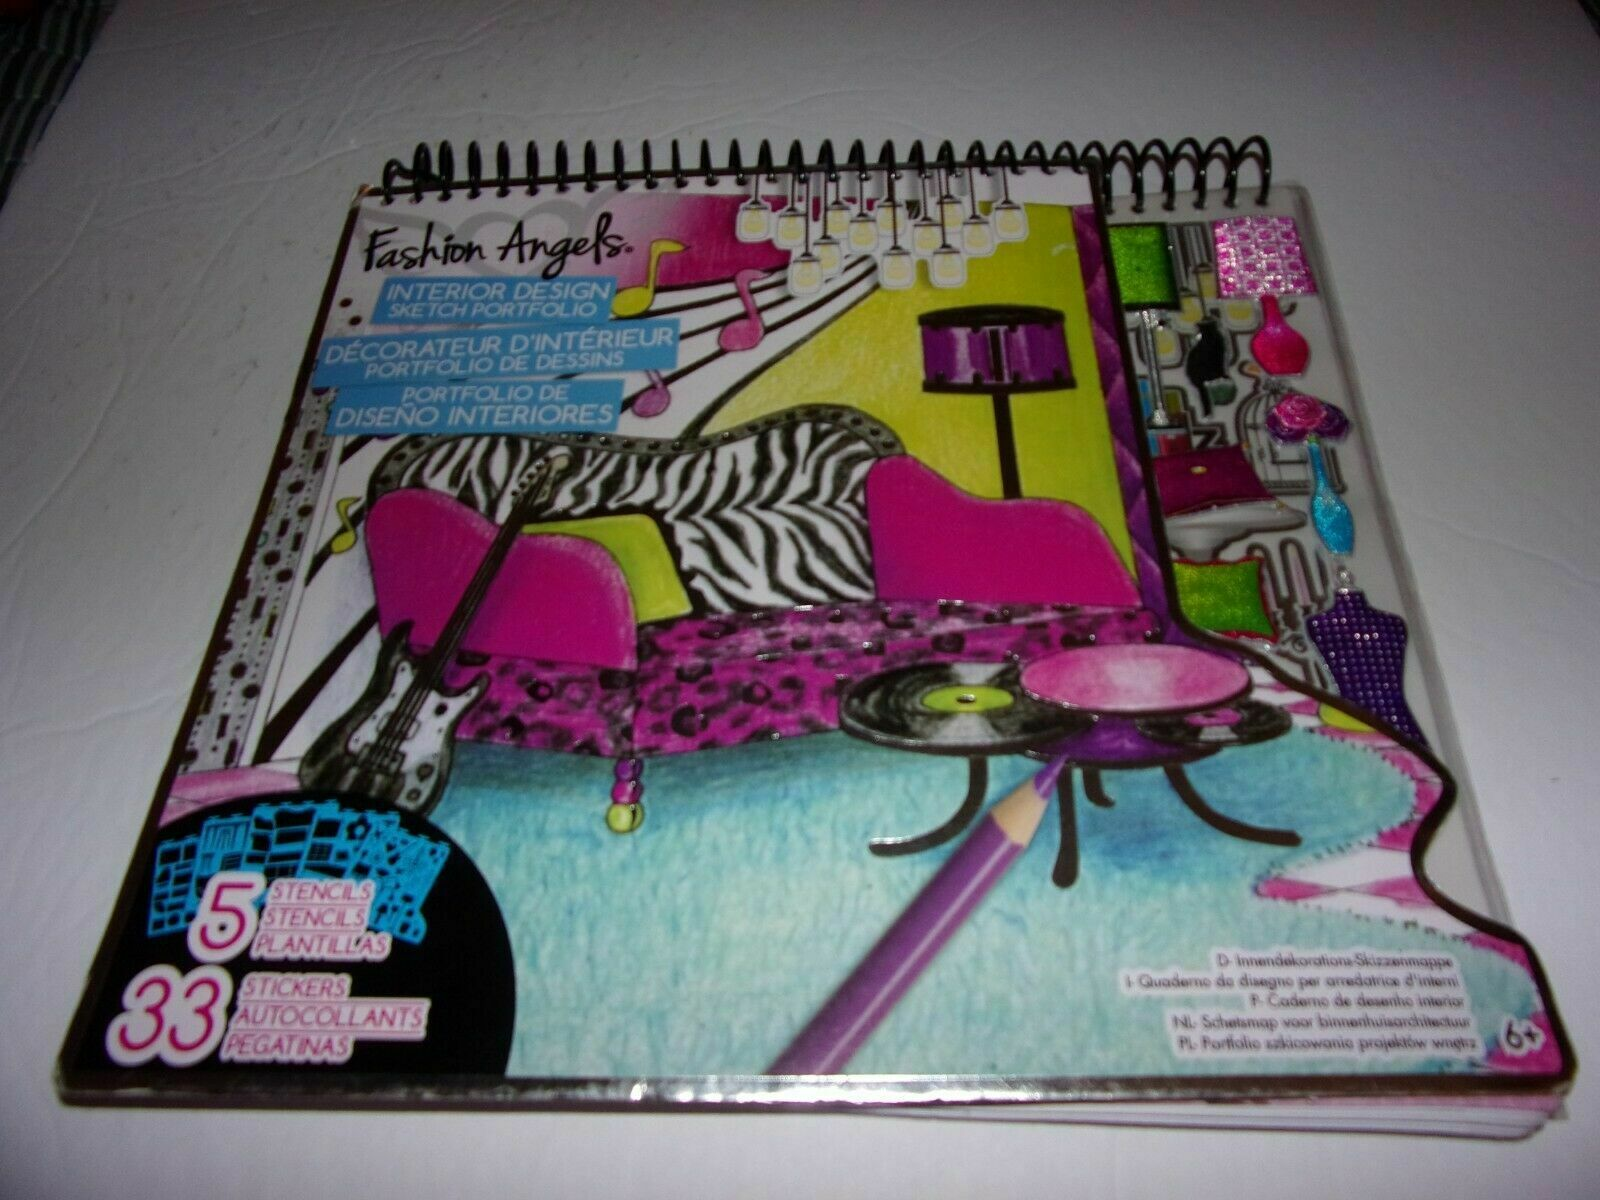 Arts Crafts Assorted 11510 Fashion Angels Interior Design Sketch Portfolio Craft Kits Arts Crafts Craft Kits